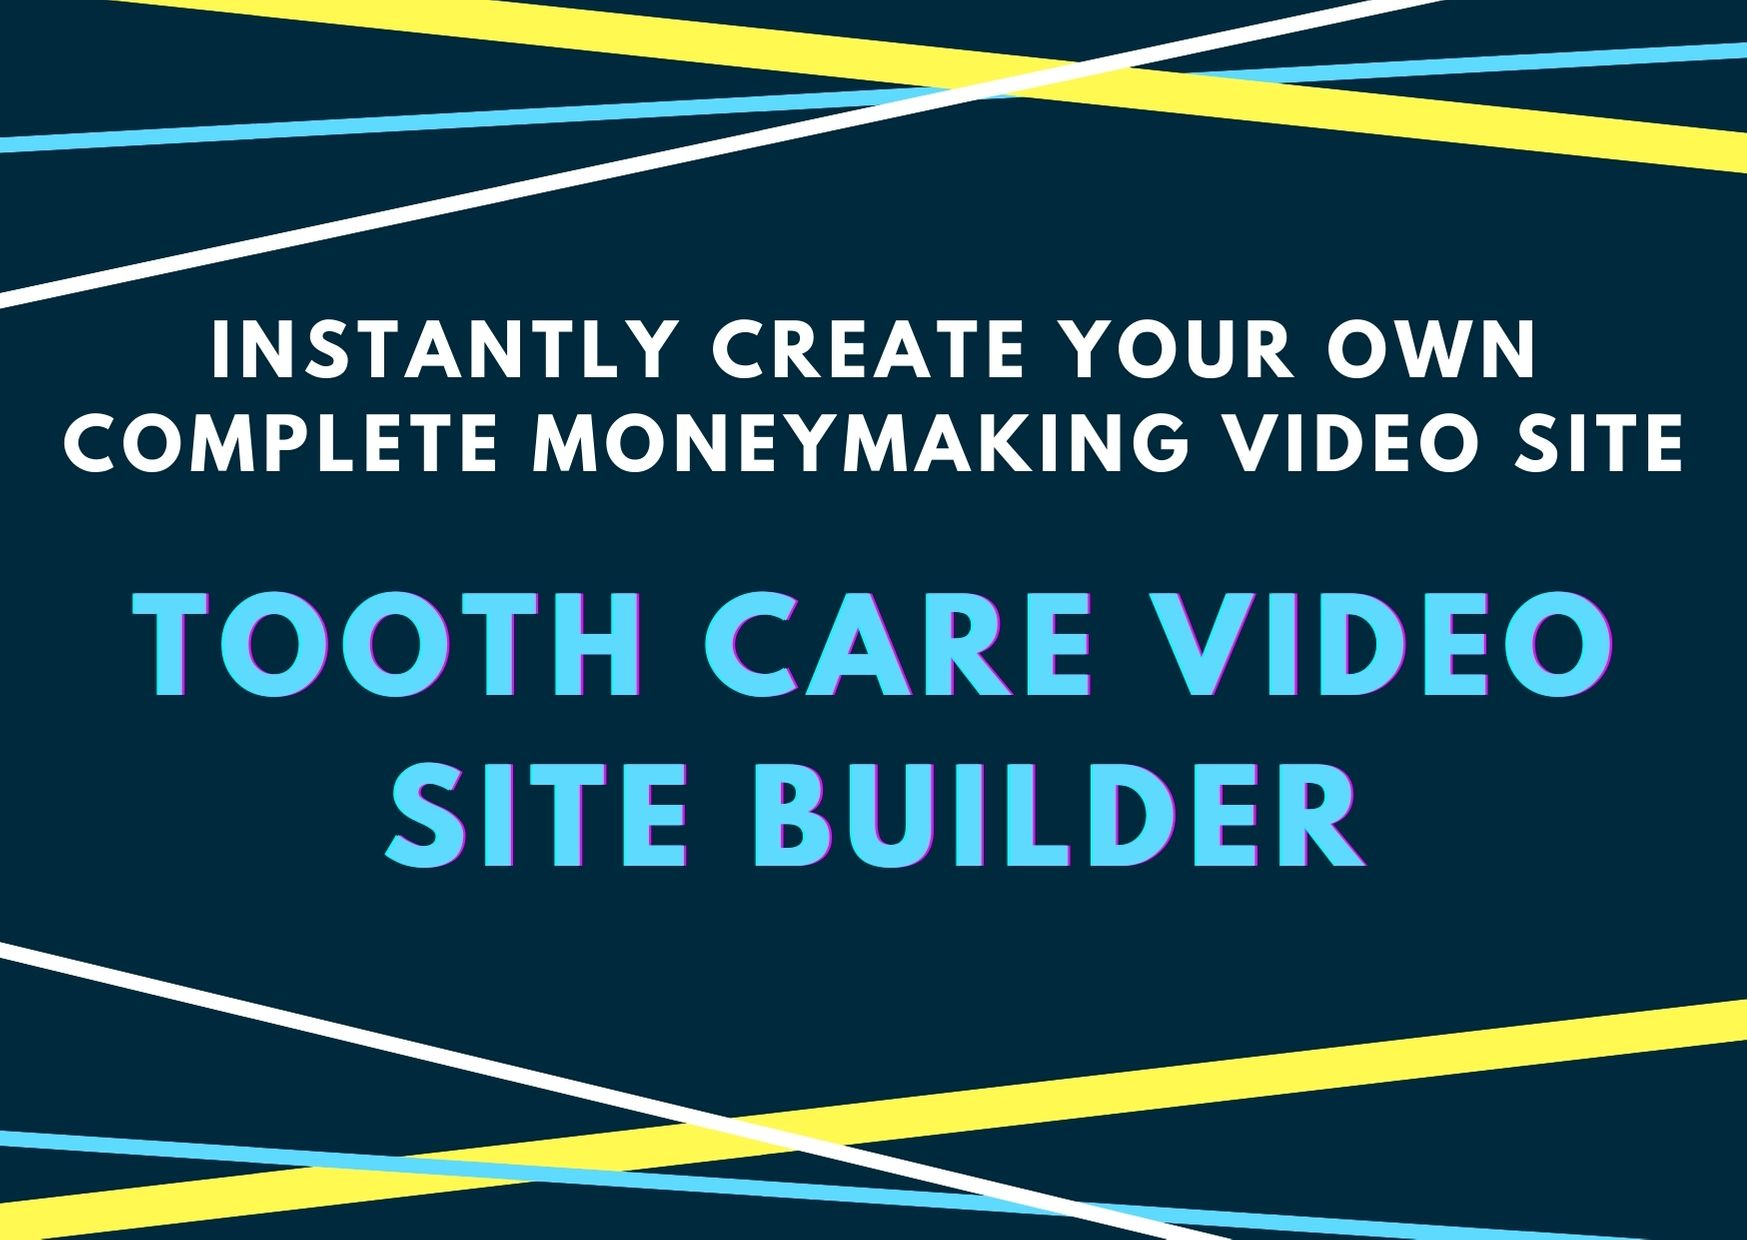 Instantly Create your own complete Money making video site